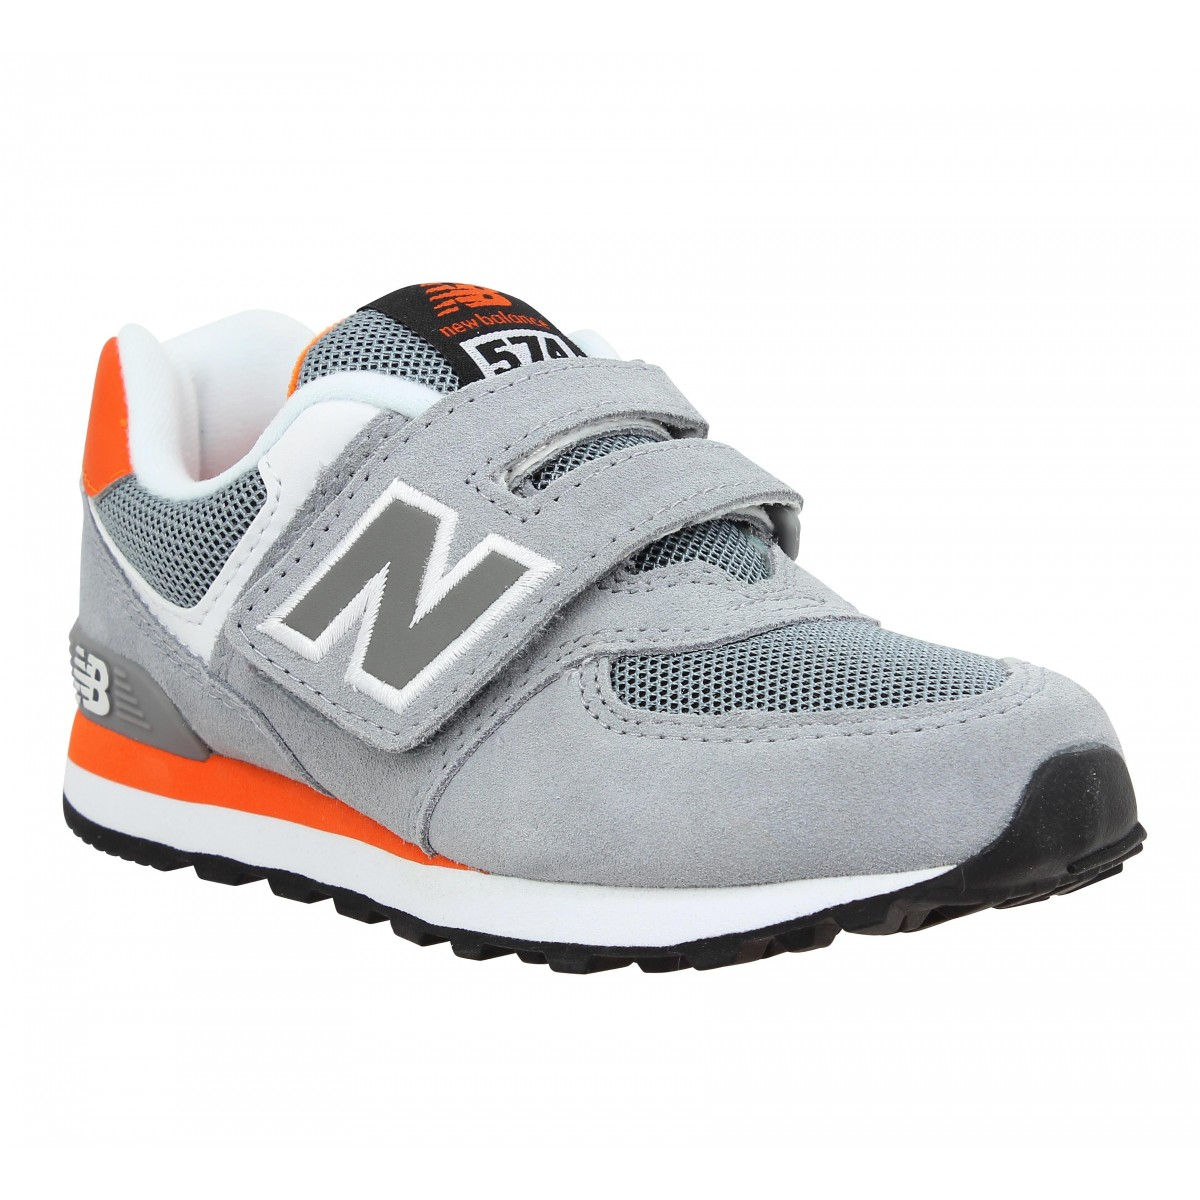 Baskets NEW BALANCE K574 velours + toile Enfant Gris + Orange